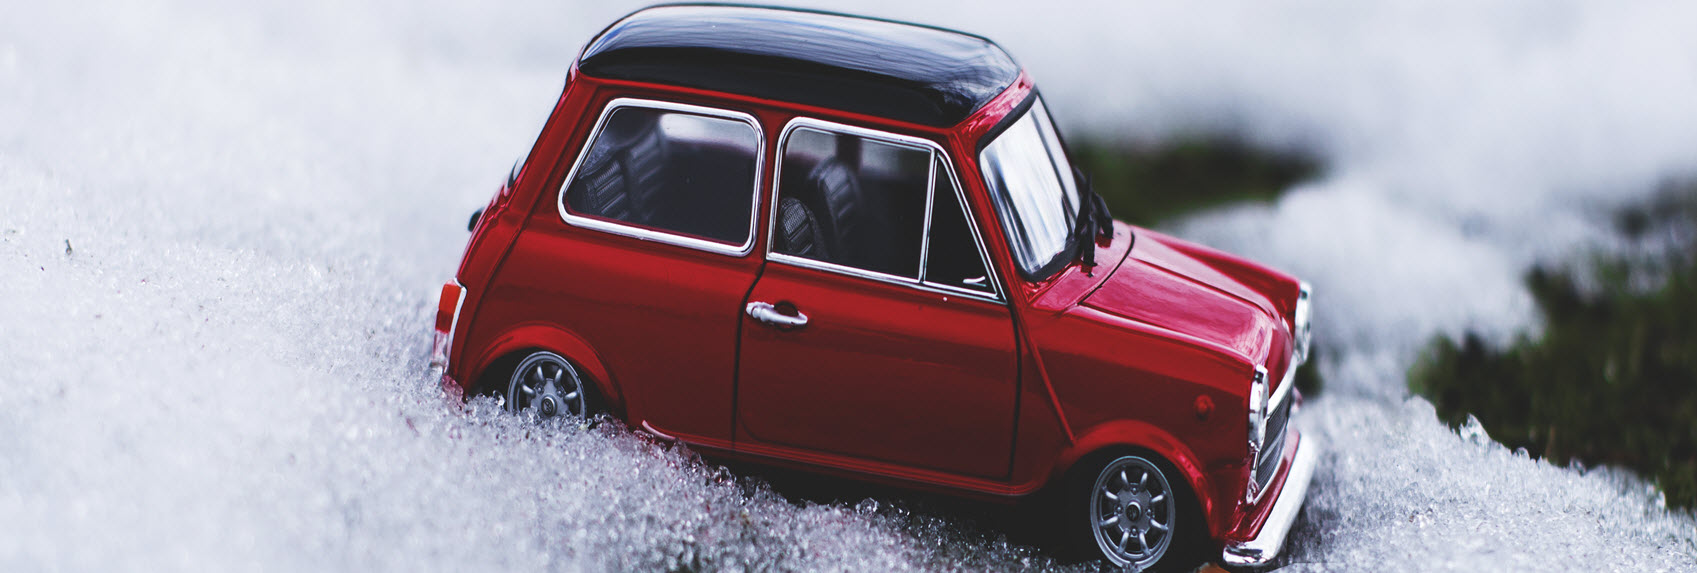 mini-car-in-ice